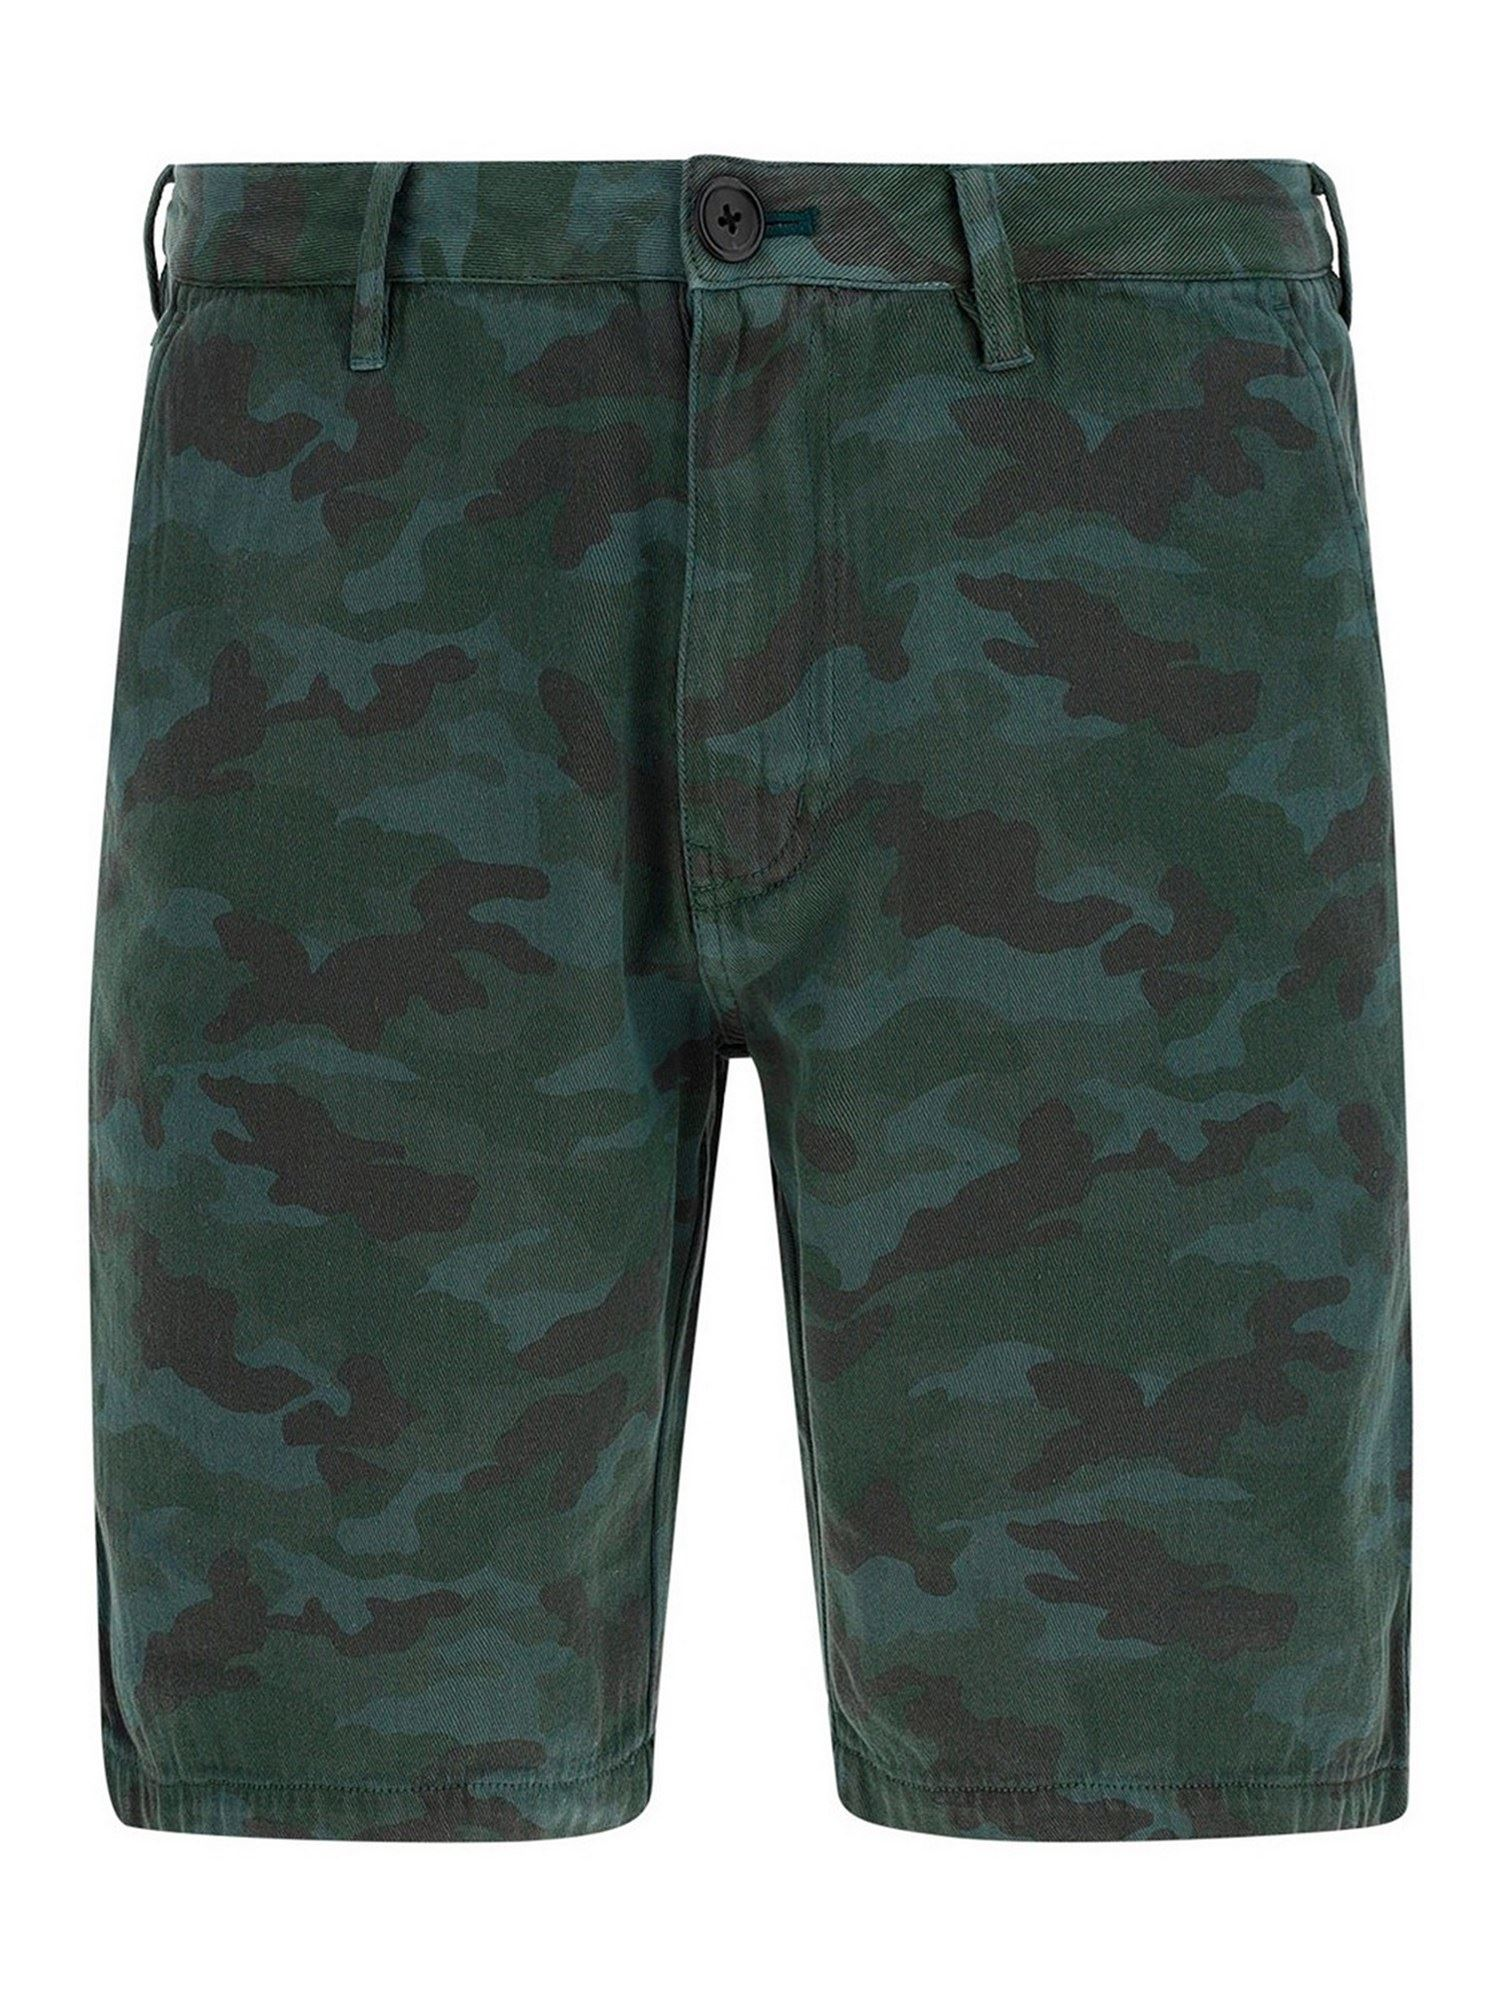 Paul Smith Militarys CAMOUFLAGE COTTON SHORTS IN GREEN